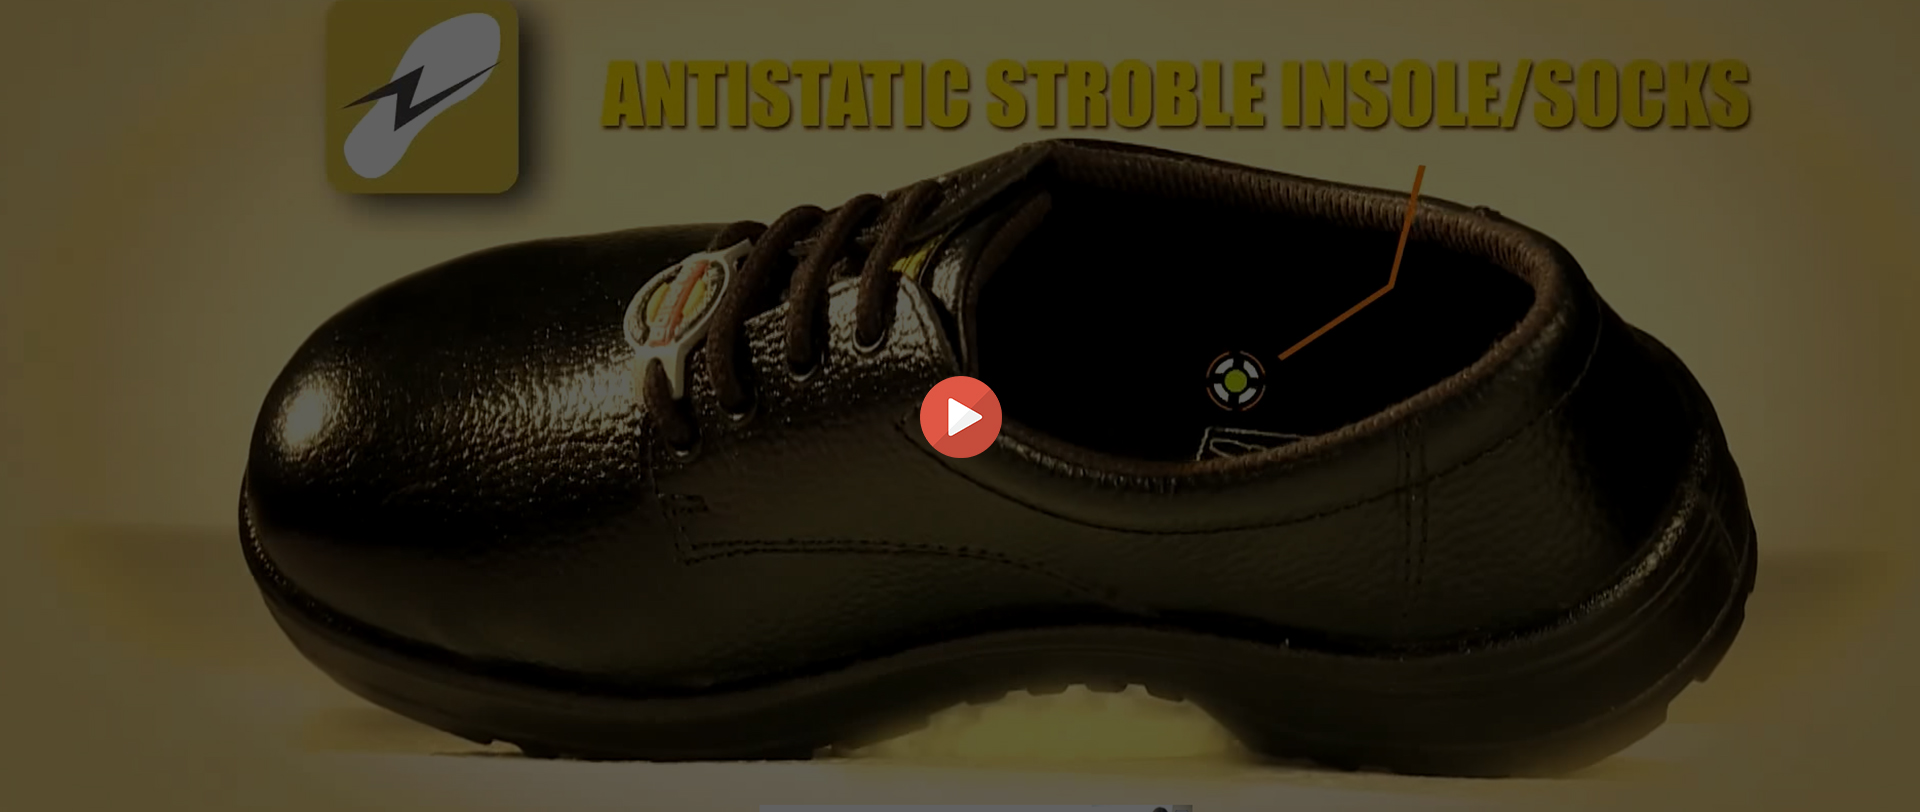 Safety Shoes Manufacturer